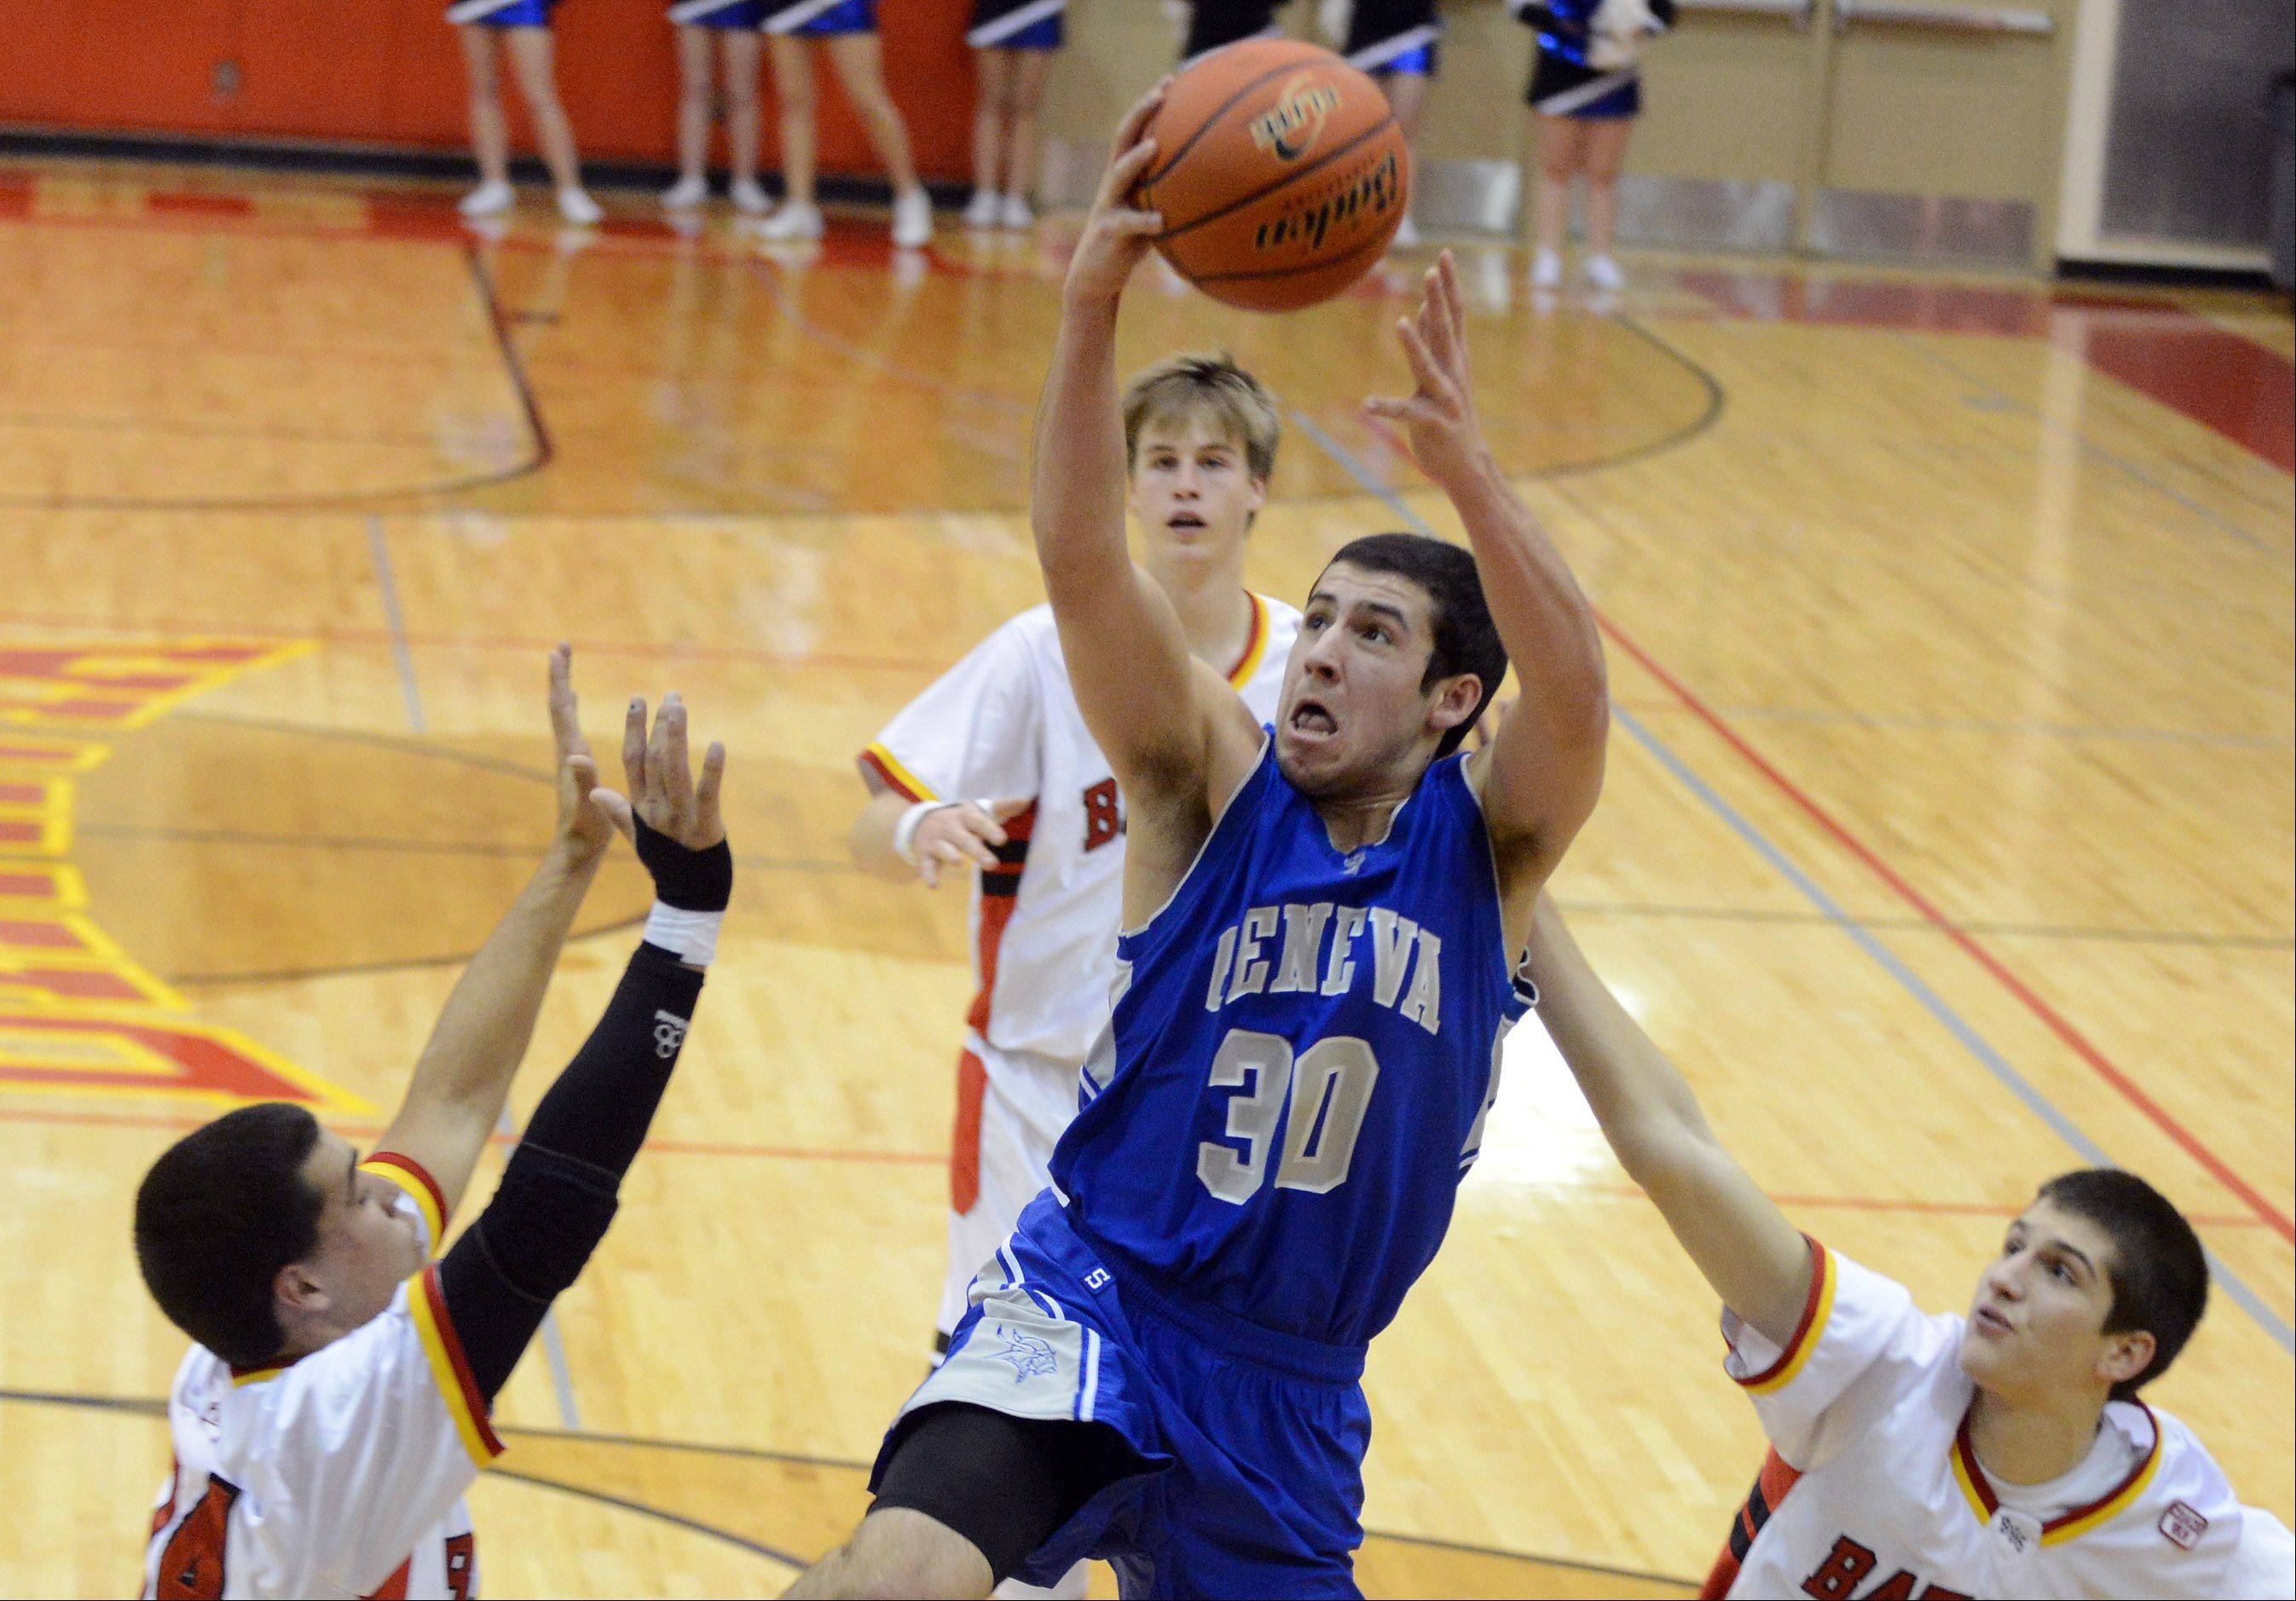 Geneva's Chris Parrilli drives to the basket.